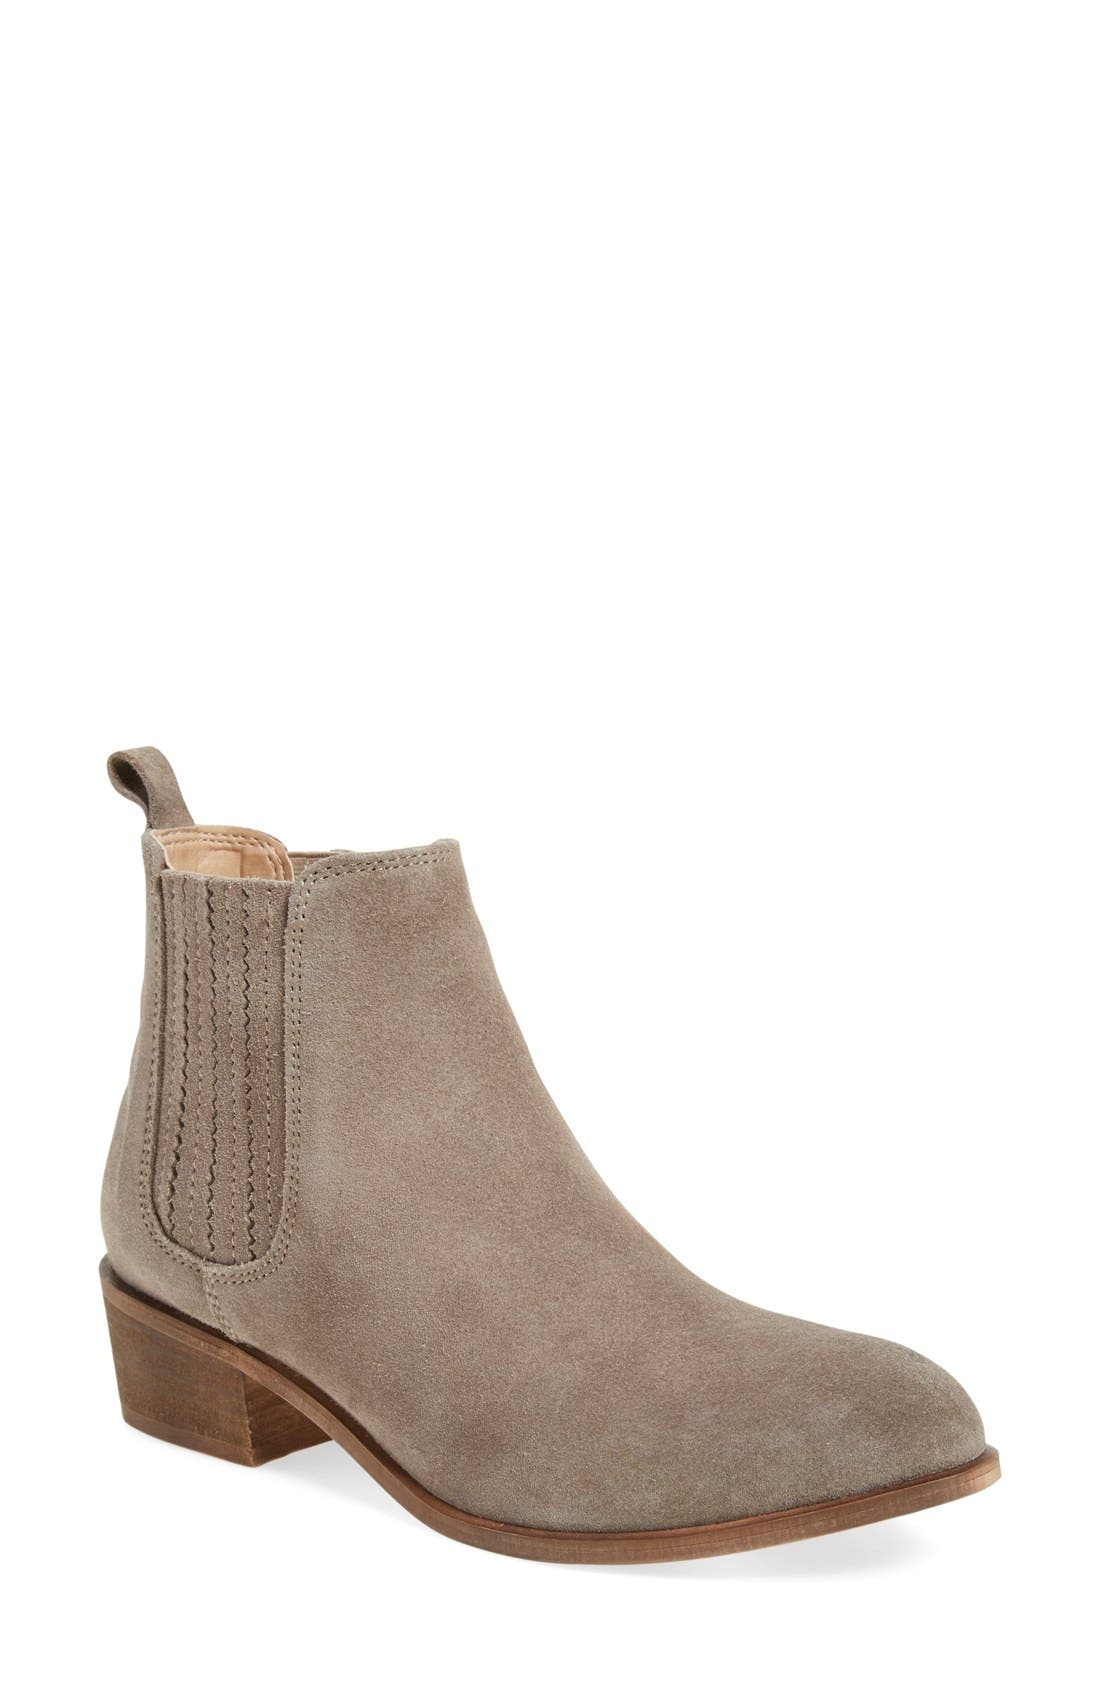 Alternate Image 1 Selected - Steve Madden 'Nylie' Chelsea Boot (Women)